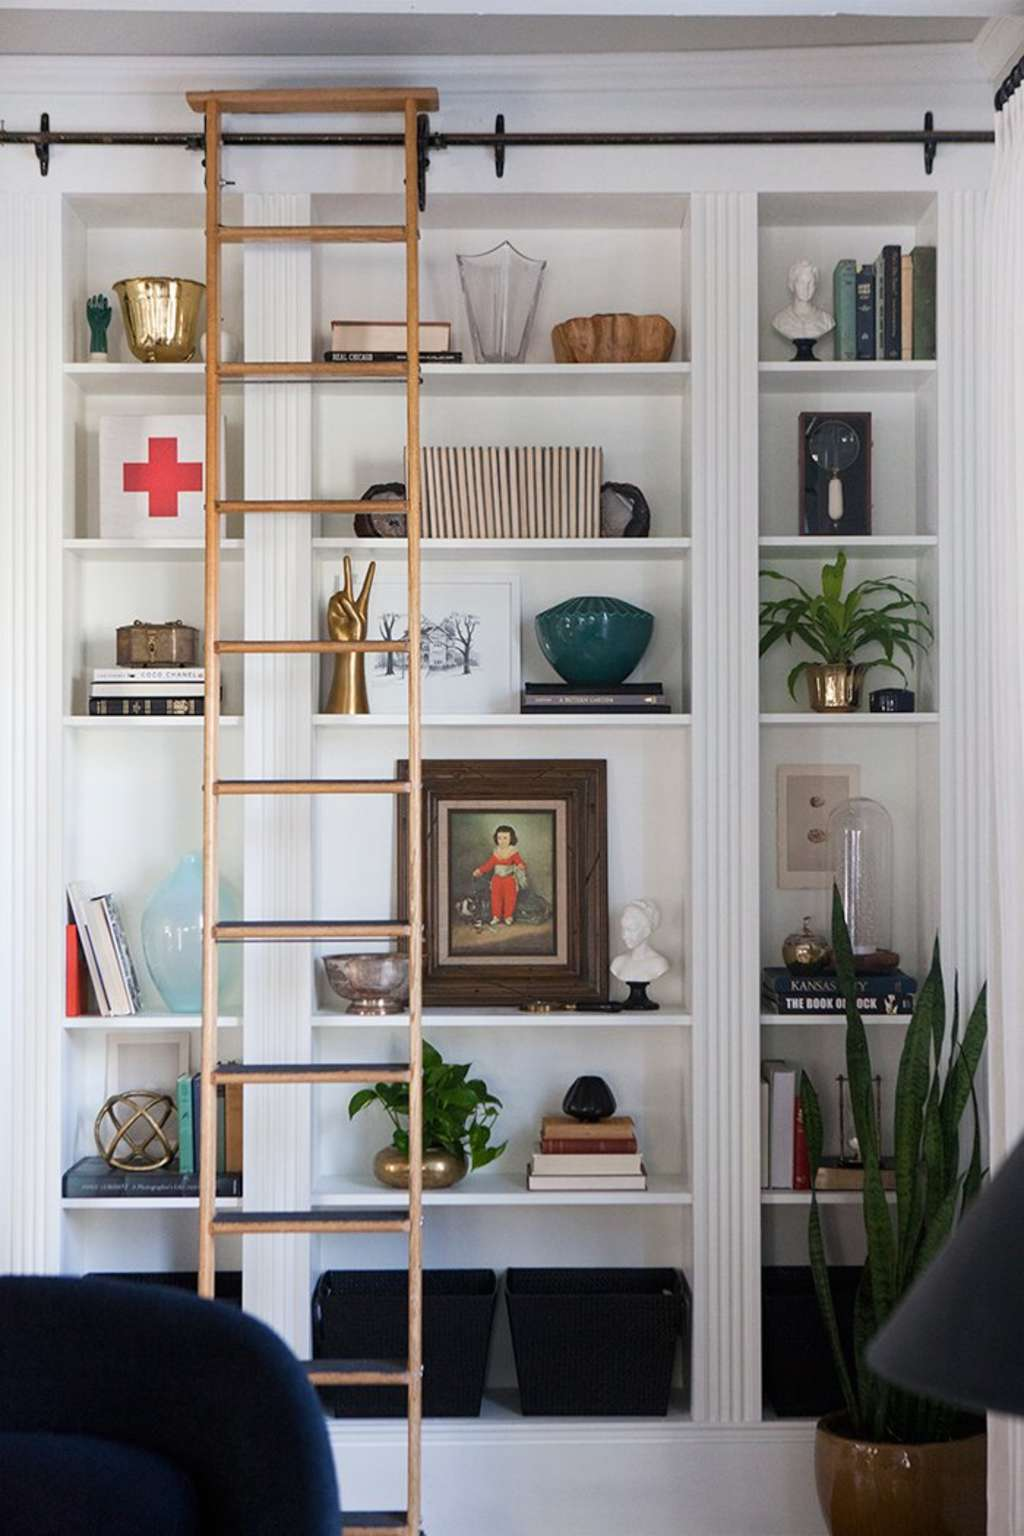 DIY Weekend Home Decor Projects